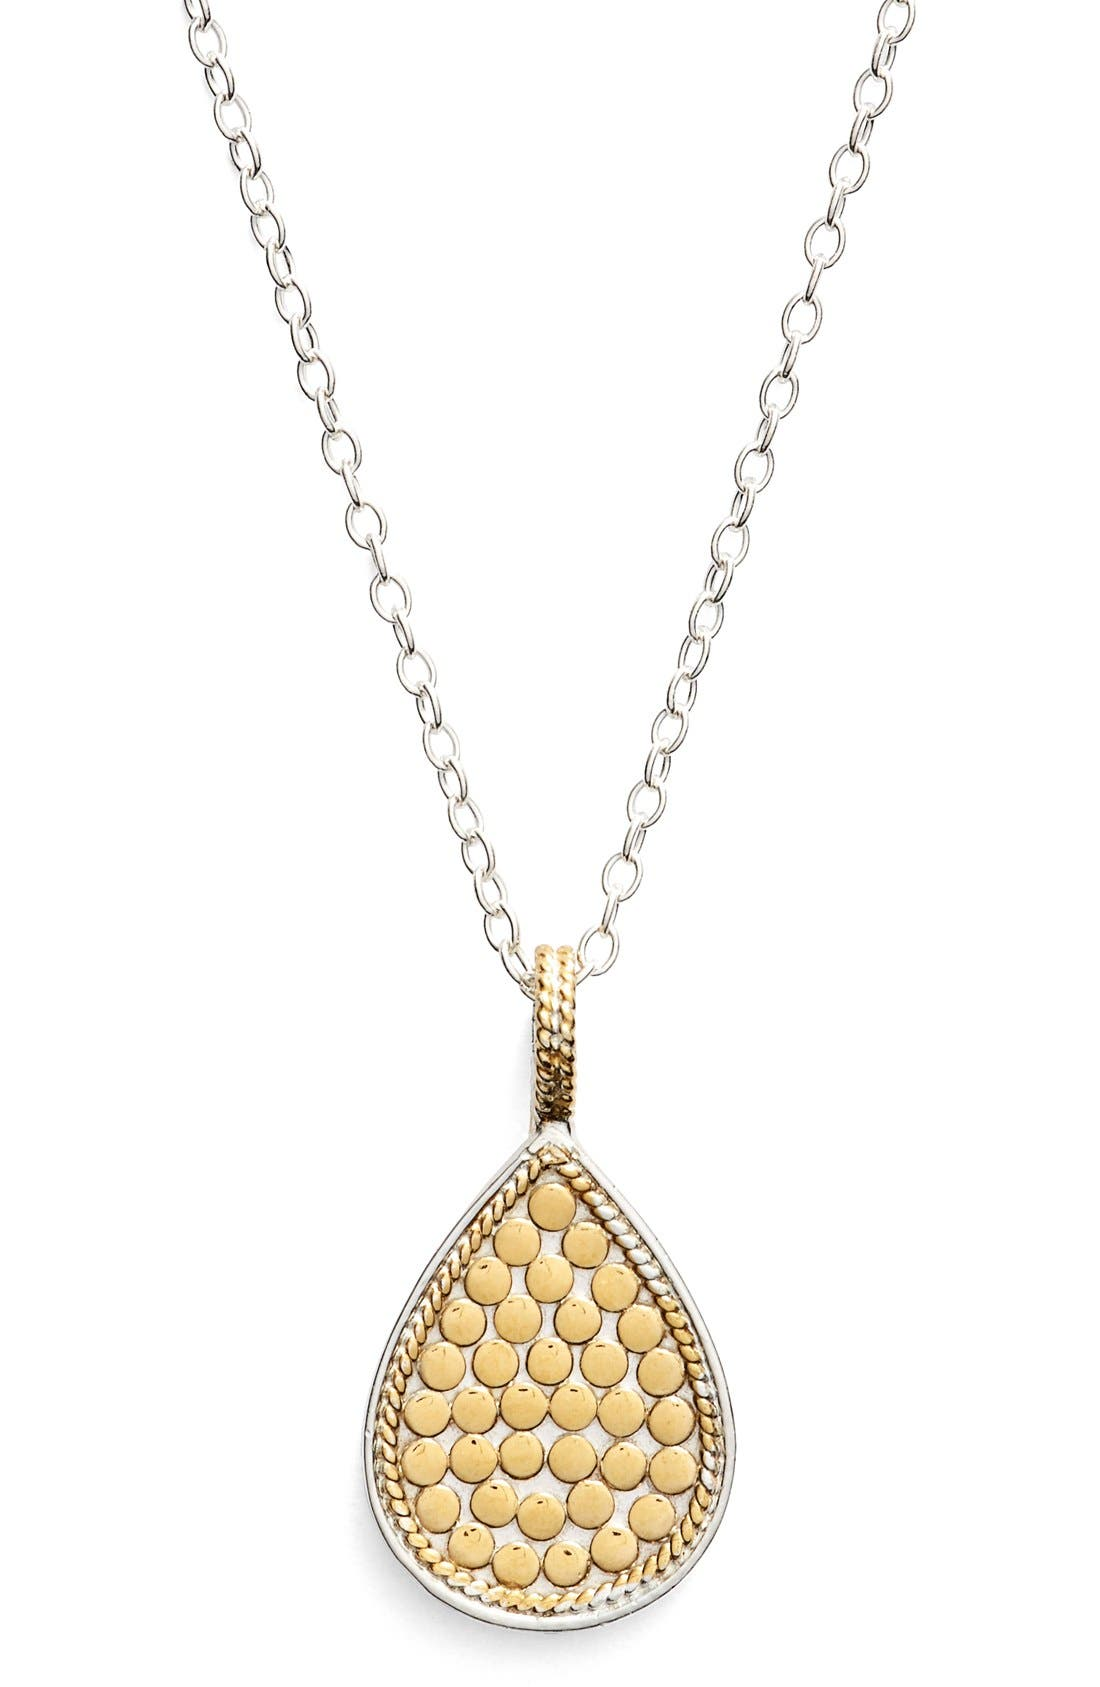 Alternate Image 1 Selected - Anna Beck 'Gili' Reversible Teardrop Pendant Necklace